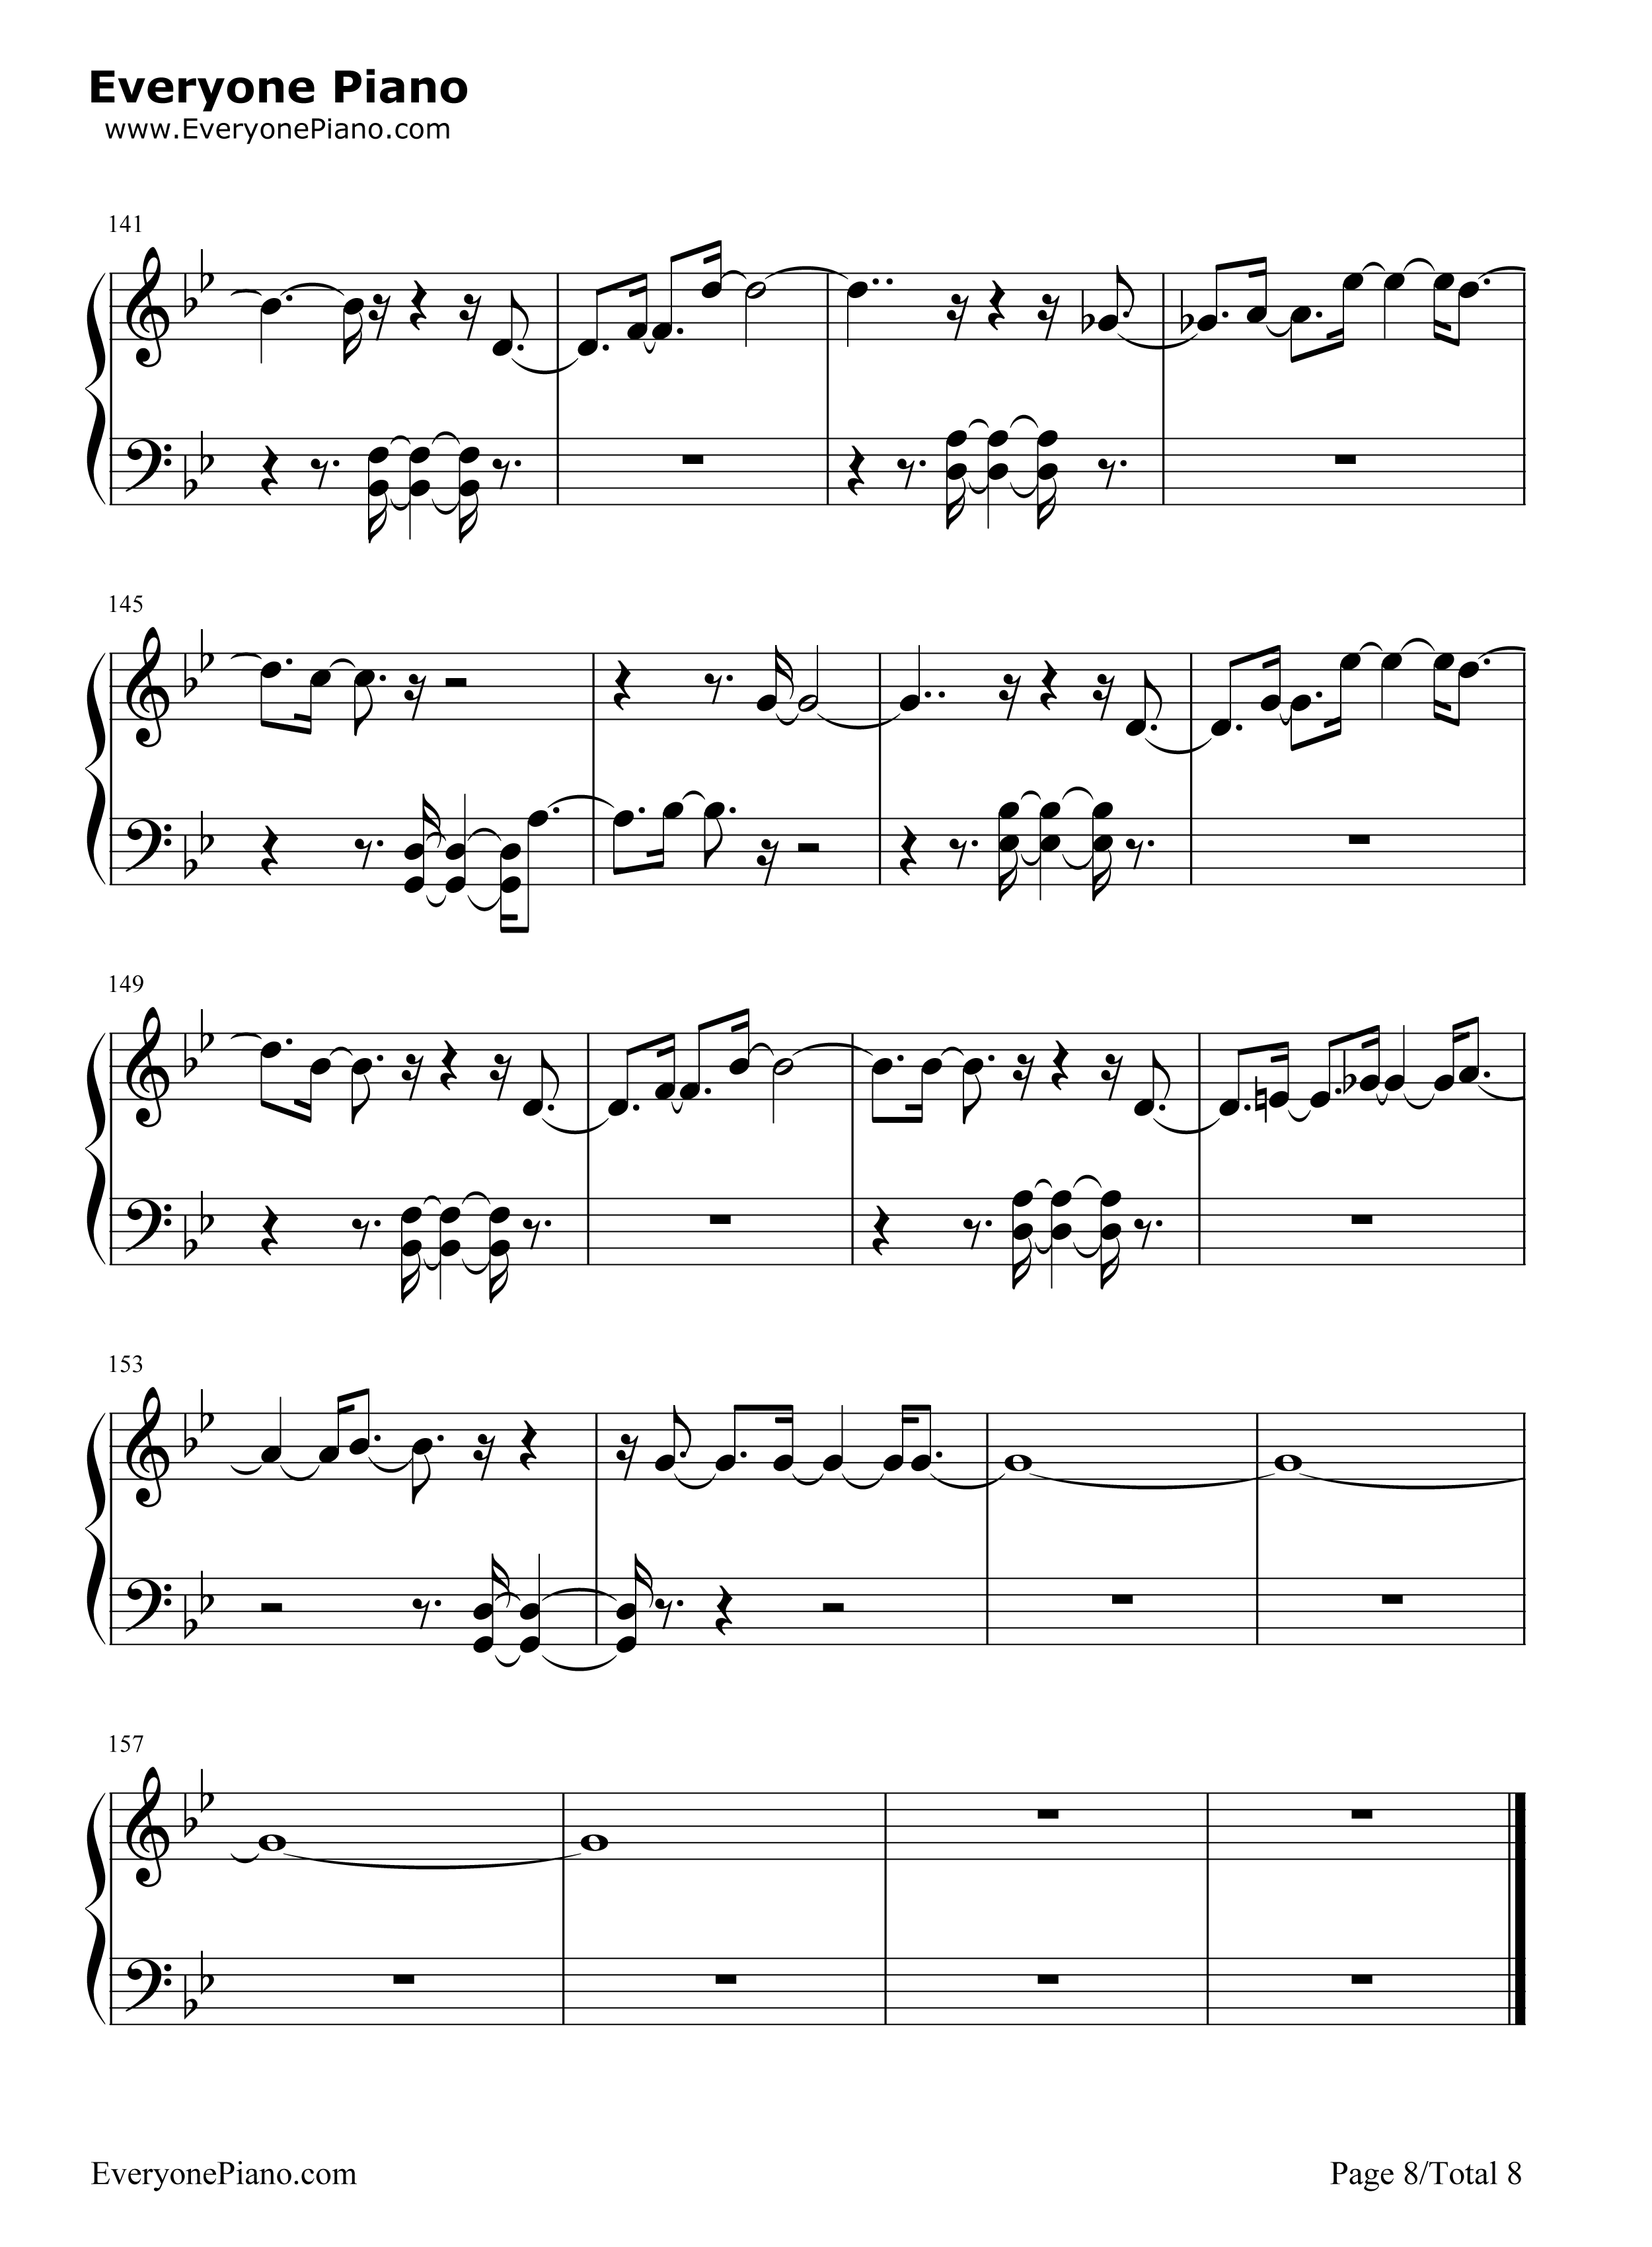 Lonely sistar stave preview 8 free piano sheet music piano chords listen now print sheet lonely sistar stave preview 8 hexwebz Gallery